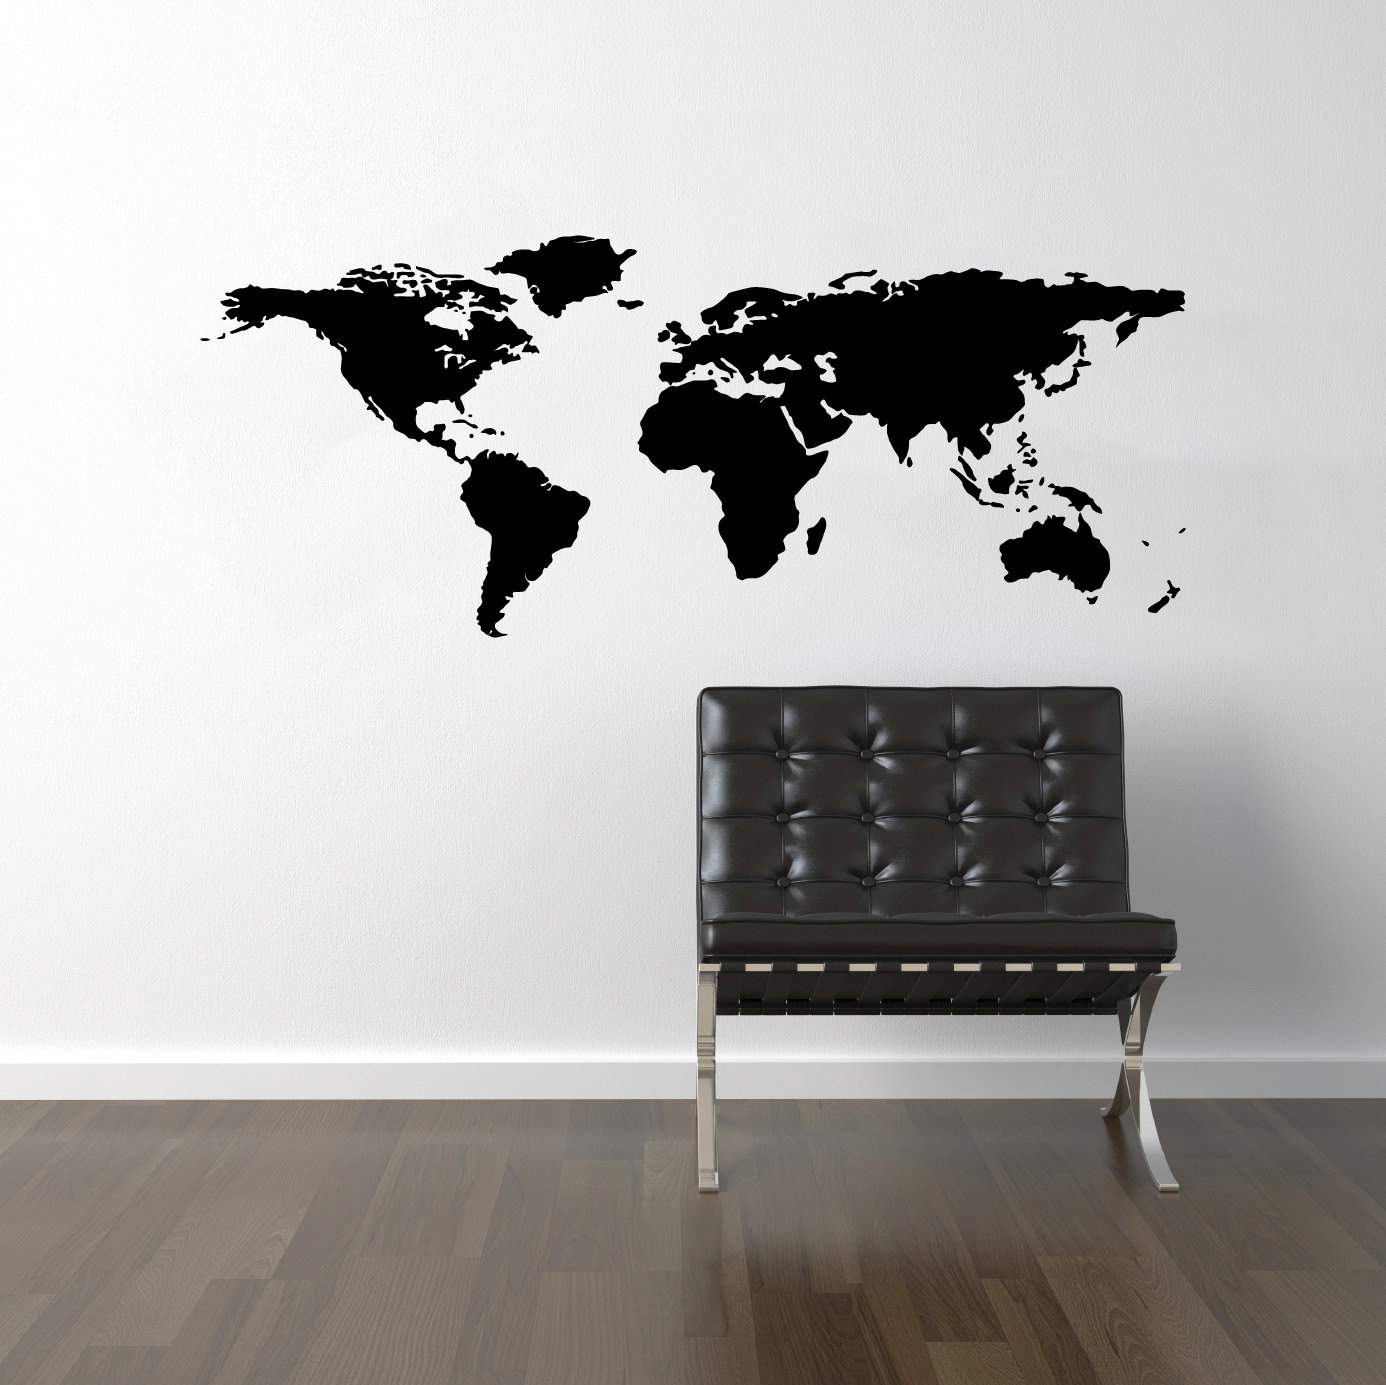 world map. Normally, folks stick these to an actual wall, not a canvas, but since I am not geographically or artistically inclined, I opted to use one of ...